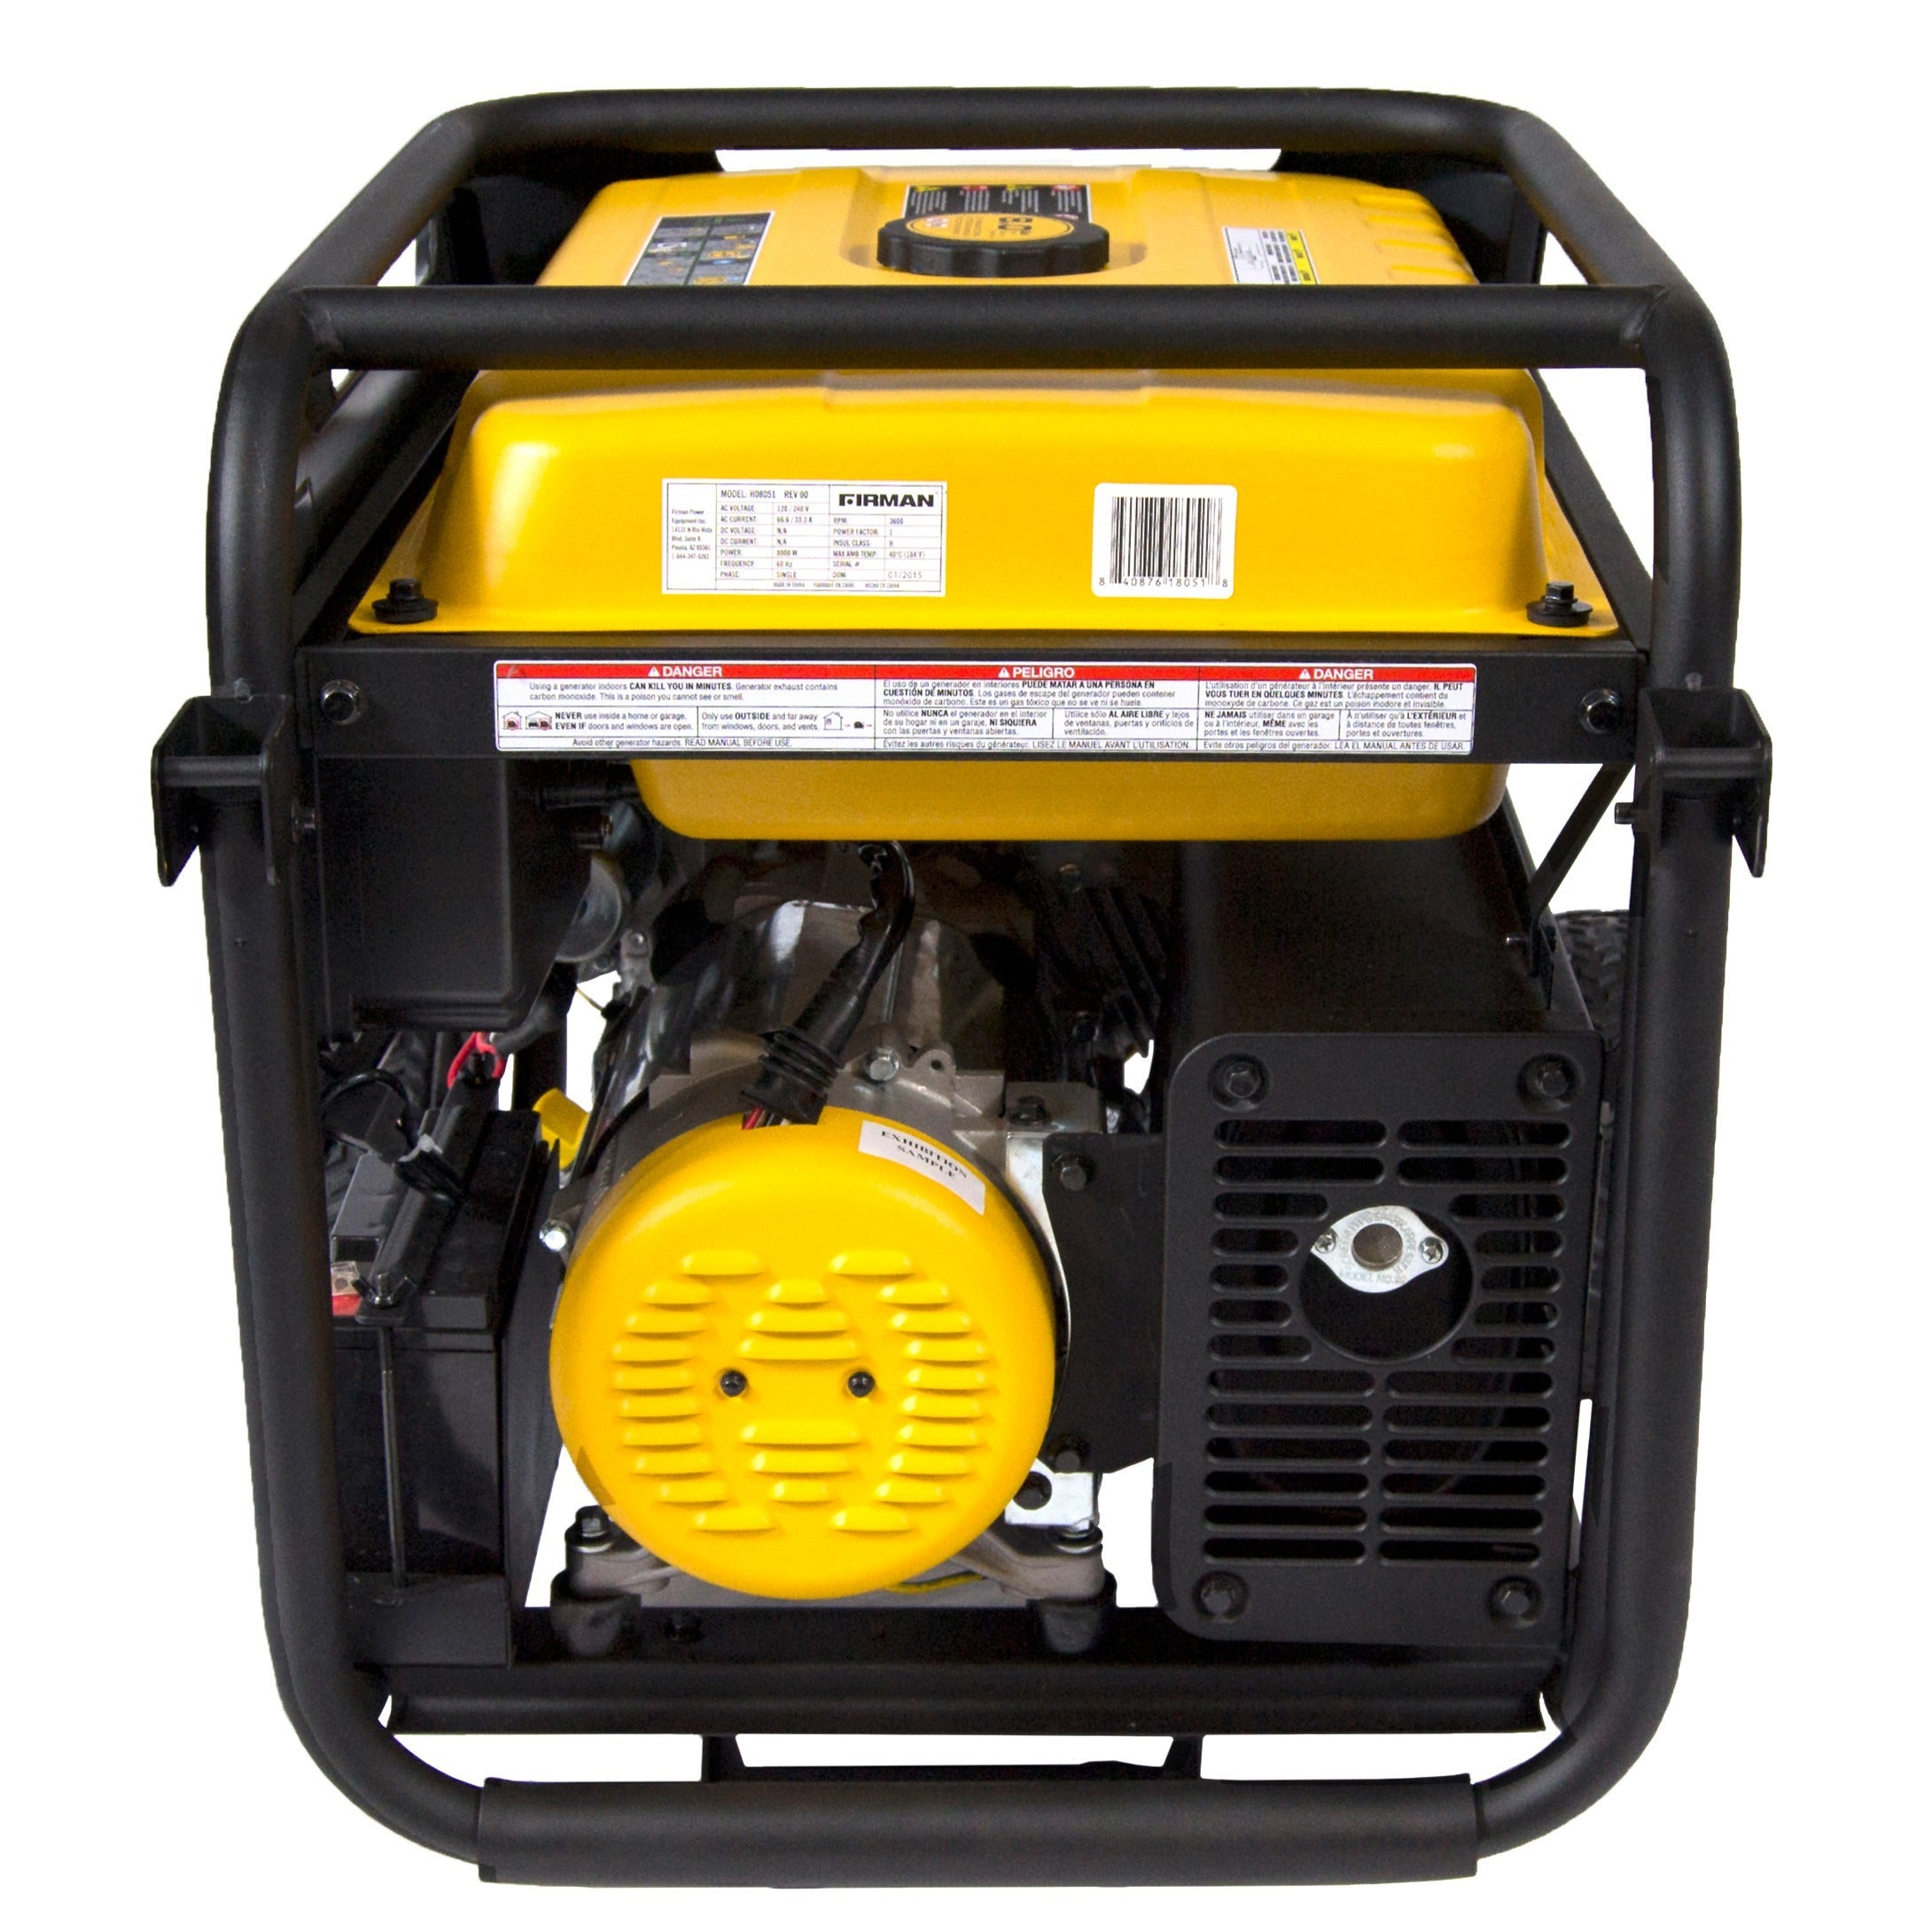 Firman Power Equipment H Dual Fuel 10 000 8 000 Watt Hybrid